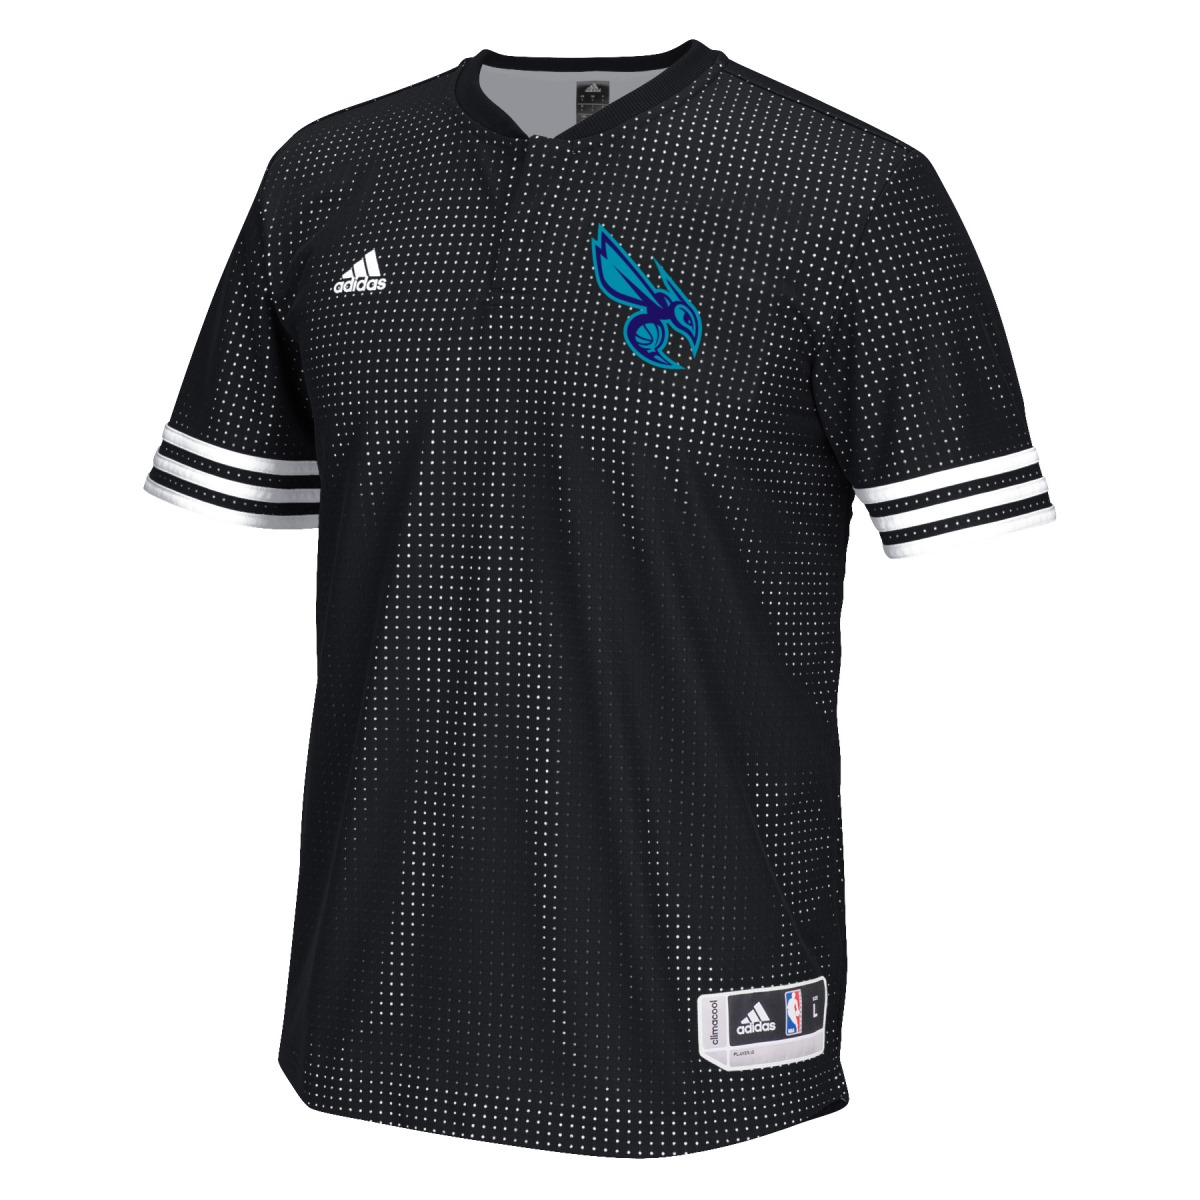 Charlotte Hornets Adidas 2015 NBA Men's On-Court Authentic S/S Shooting Shirt